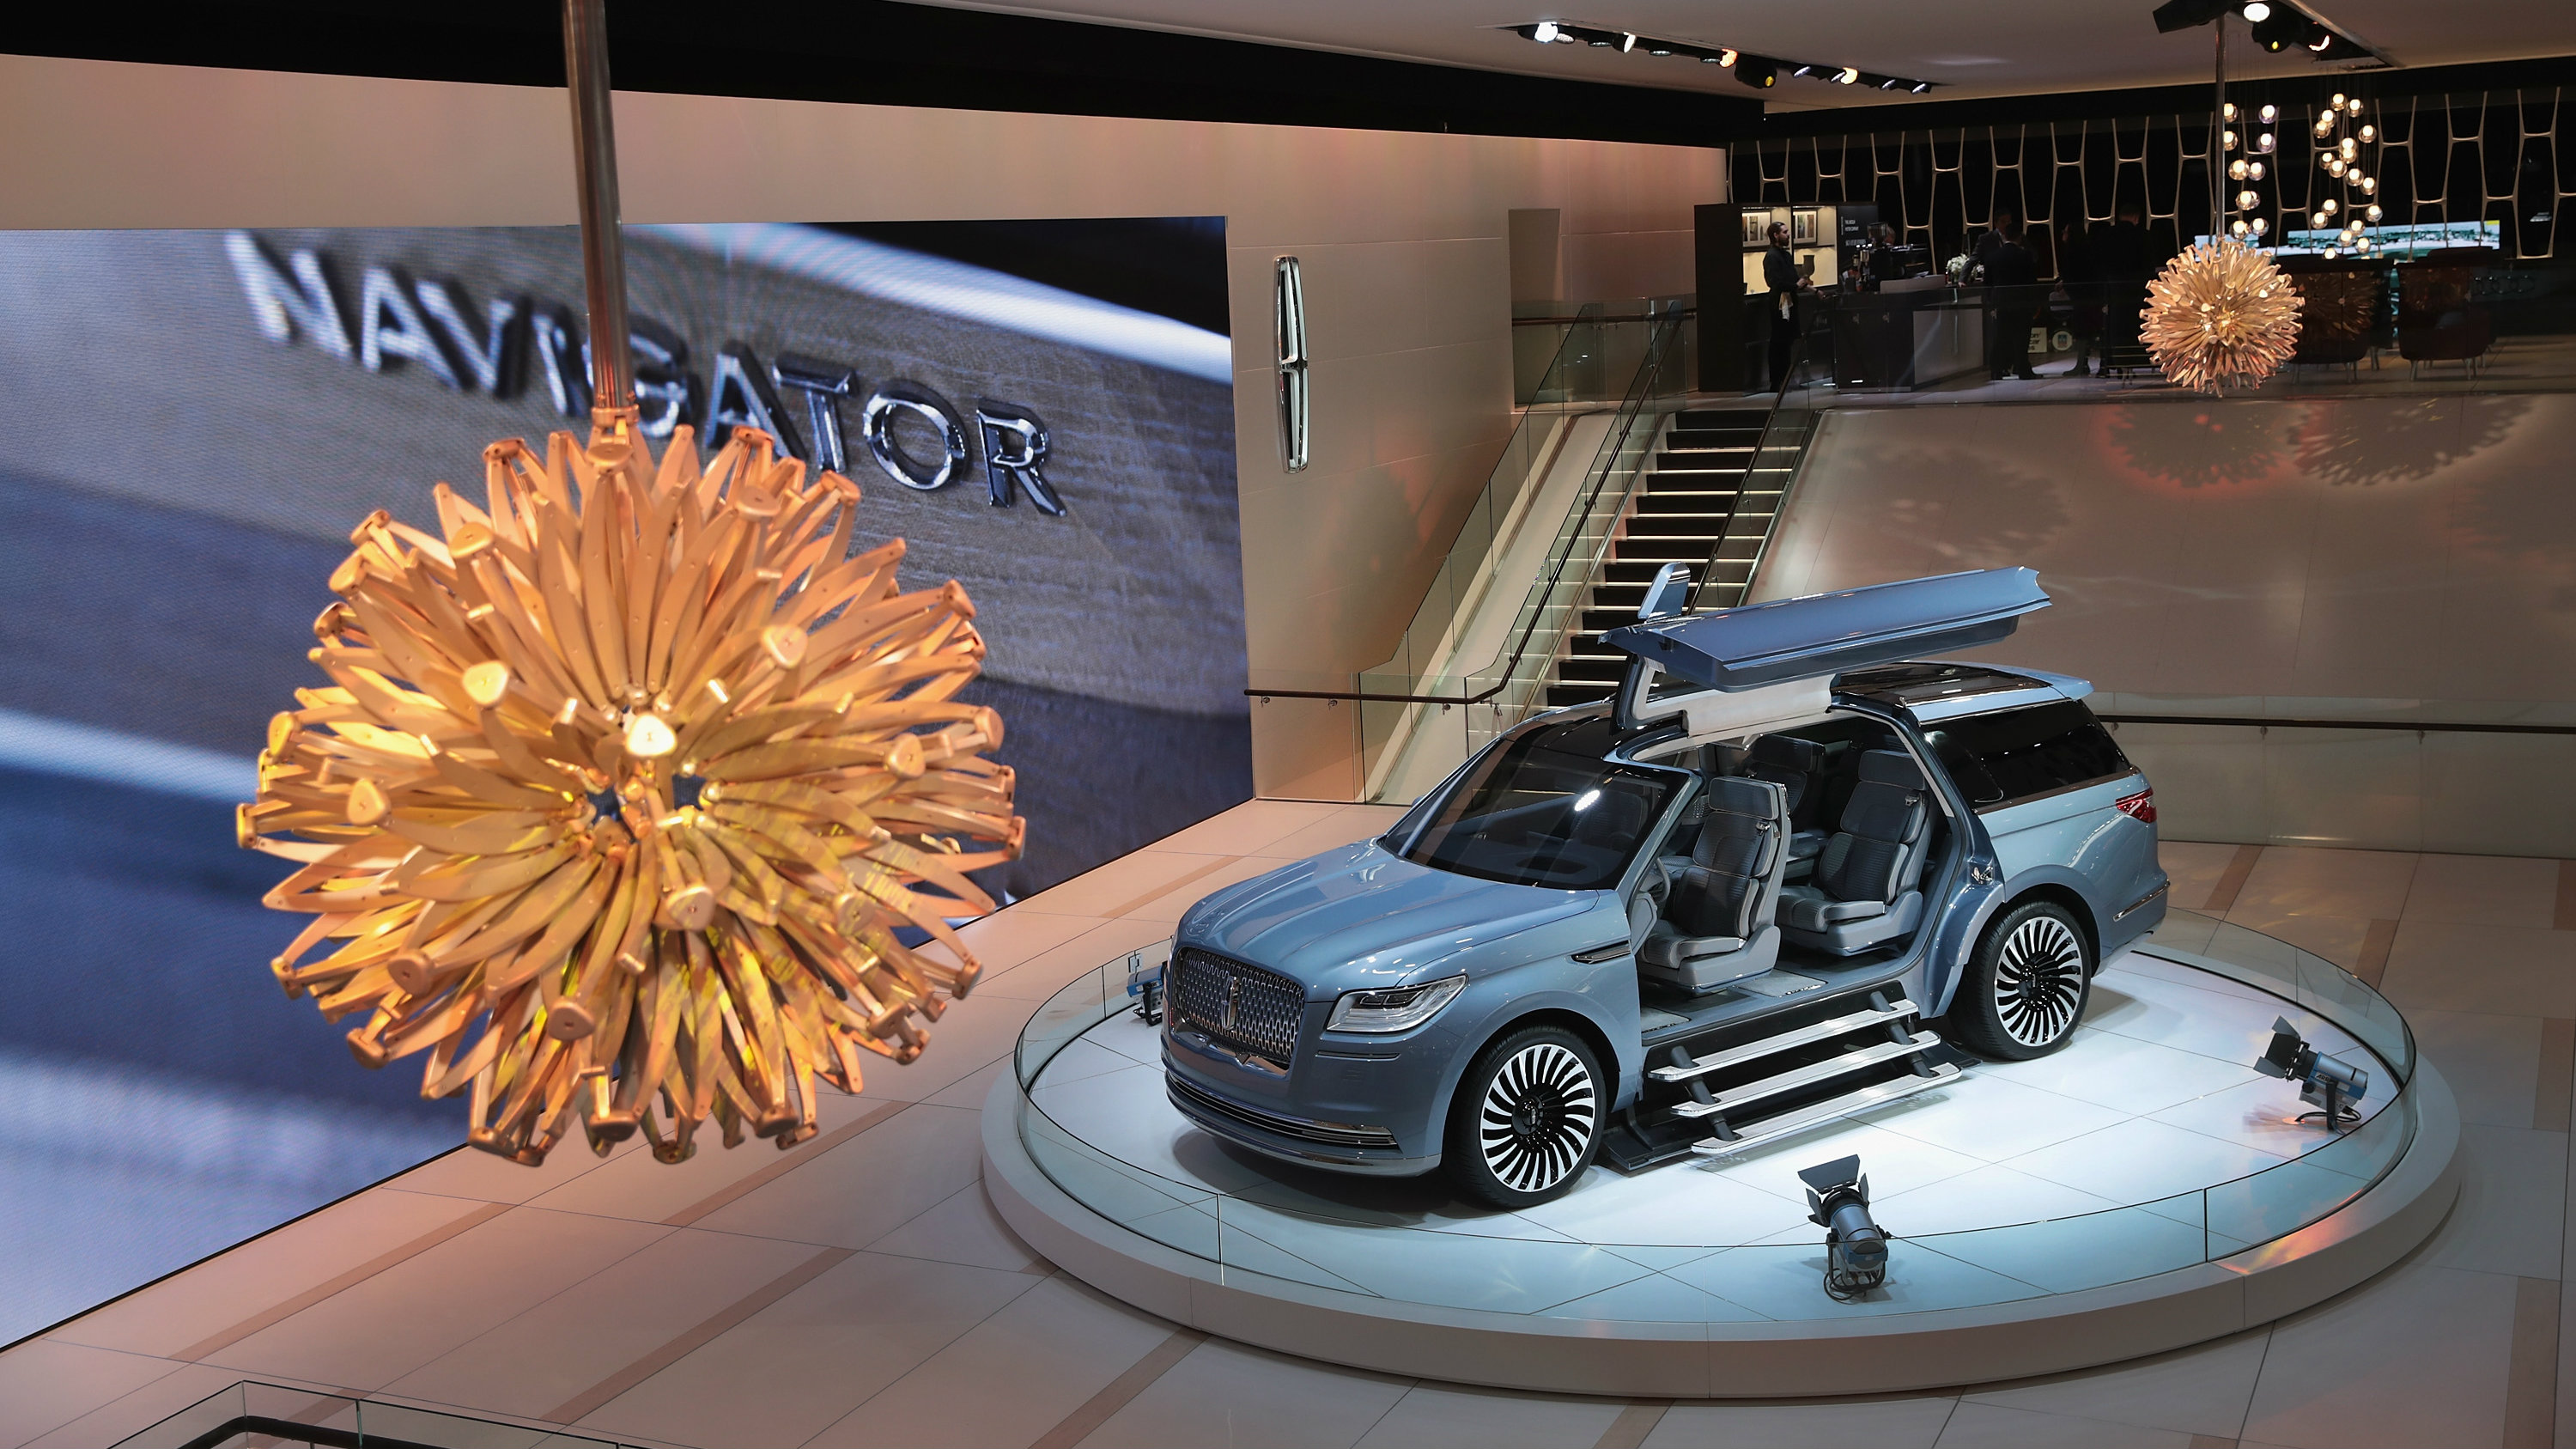 Detroit Auto Show Check Out The Door On The Lincoln - Lincoln car show